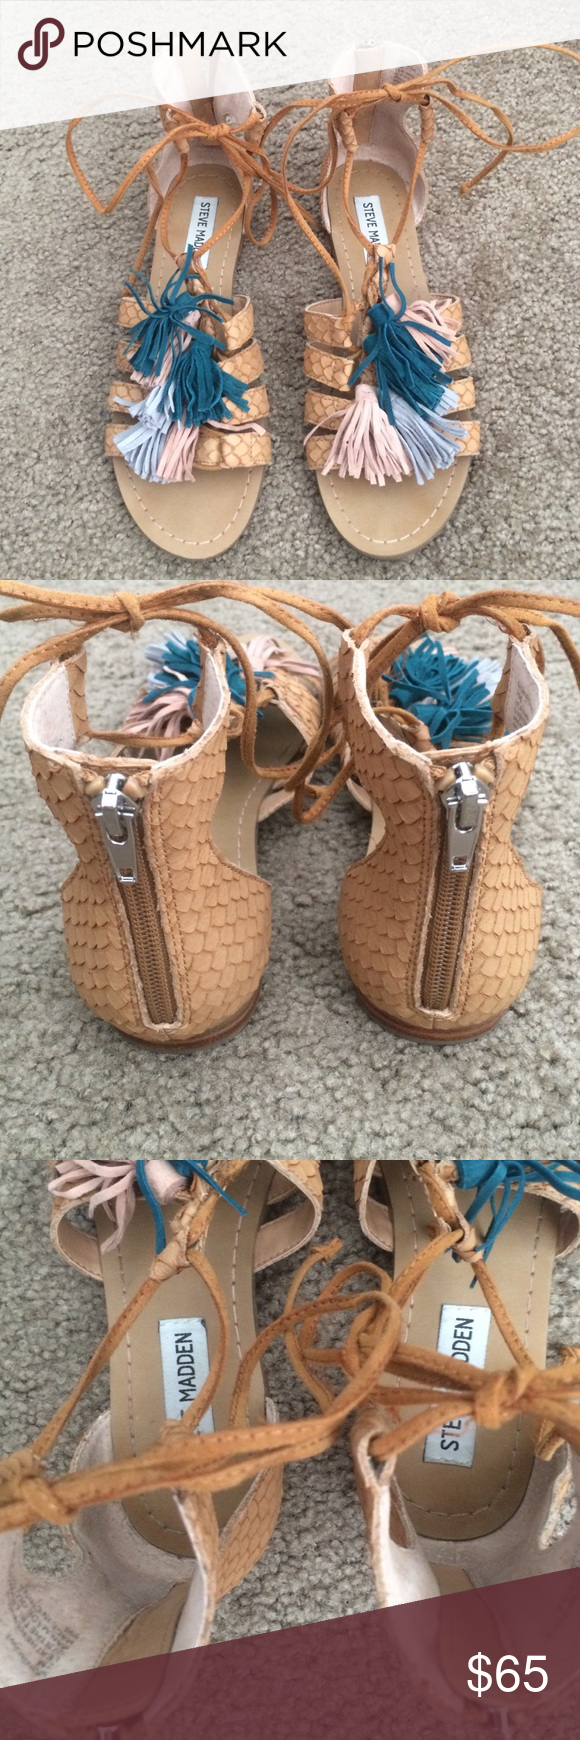 Steve Madden Tassel Gladiator Sandals Only worn maybe 2 times very excellent condition!! Tassels are teal, light pink and light blue. Perfect to spice up any outfit and very comfortable too. They can be laced up the ankle or just tied Steve Madden Shoes Sandals